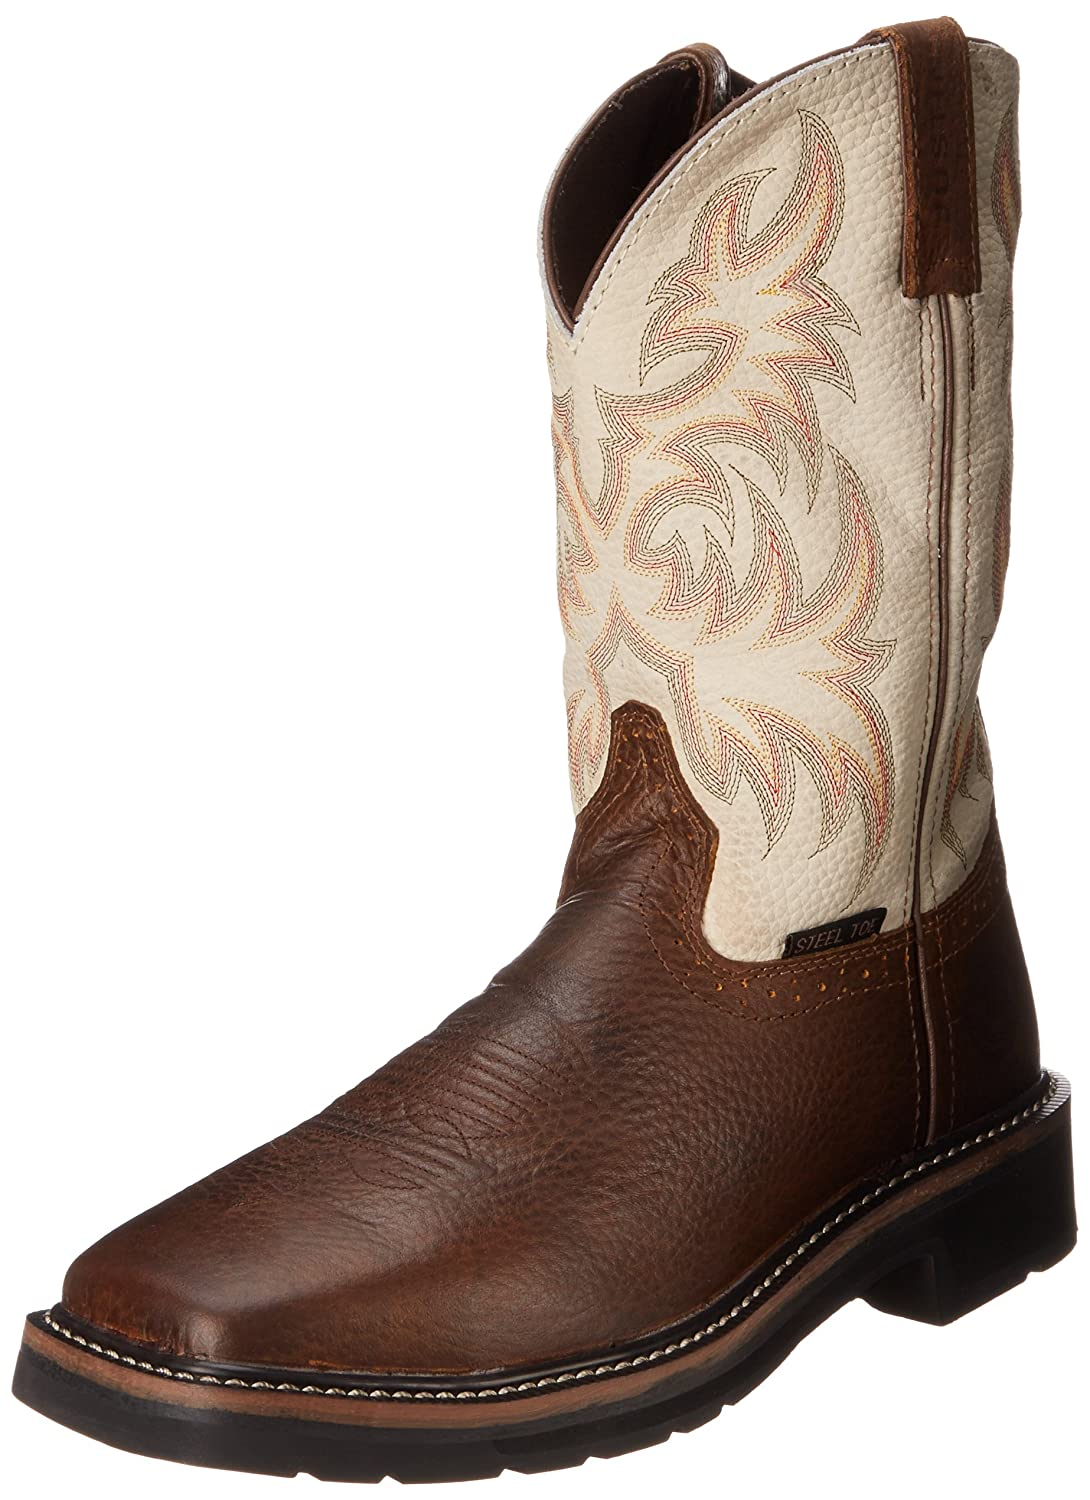 6b0694703a4 Justin Original Work Boots Men's Stampede Boot